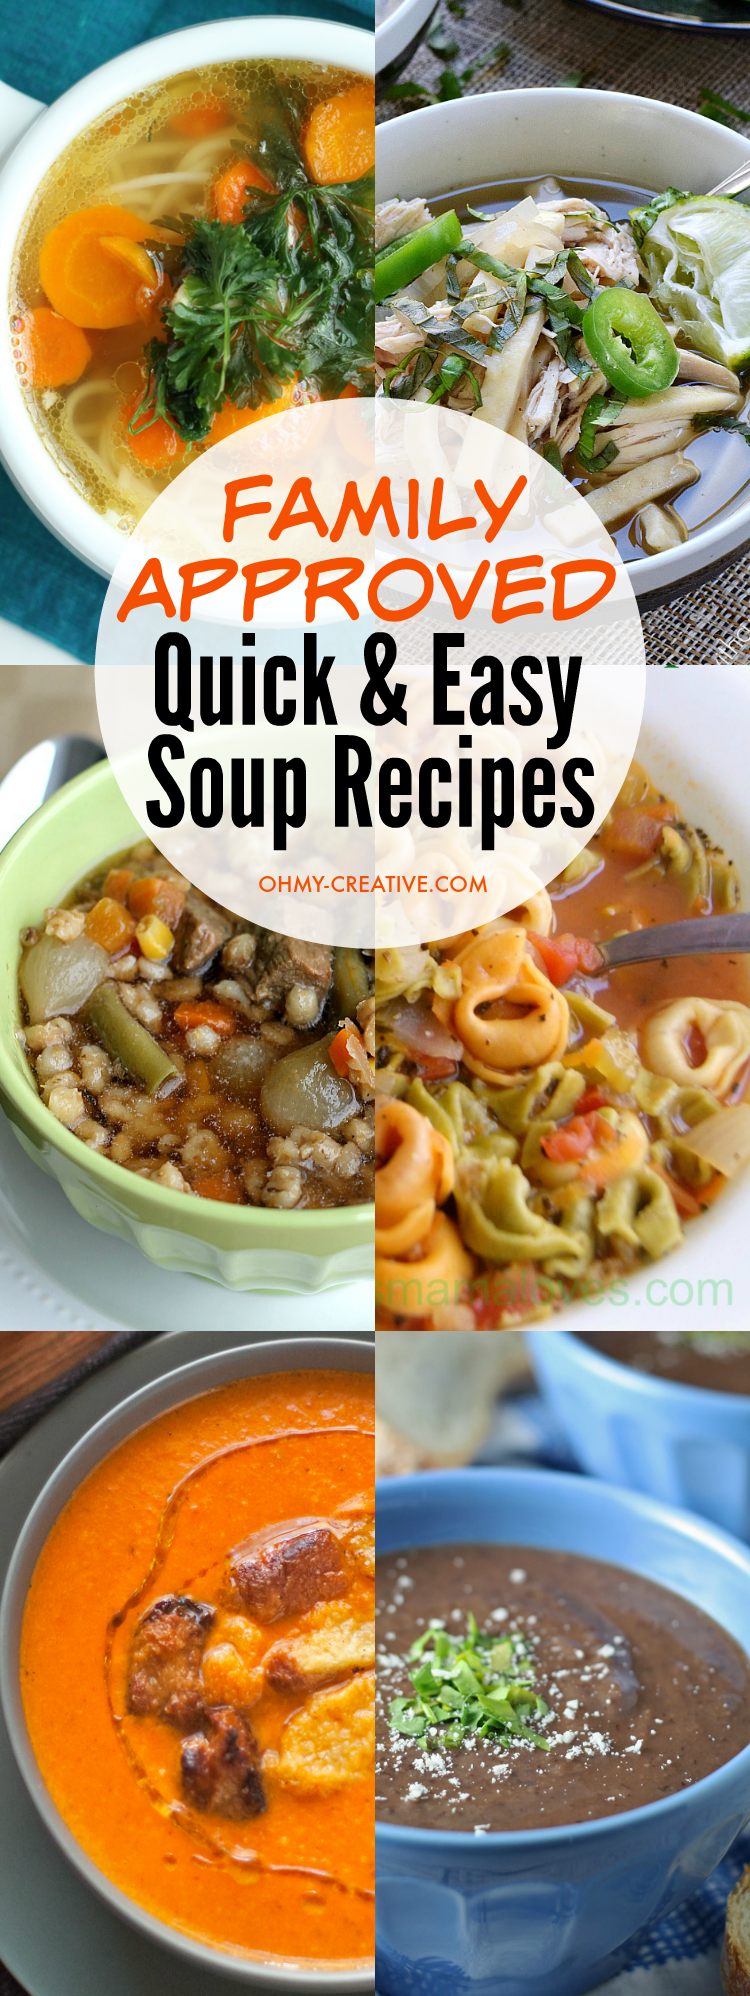 Try one of these Family Approved Quick and Easy Soup Recipes for lunch or dinner tonight! | OHMY-CREATIVE.COM